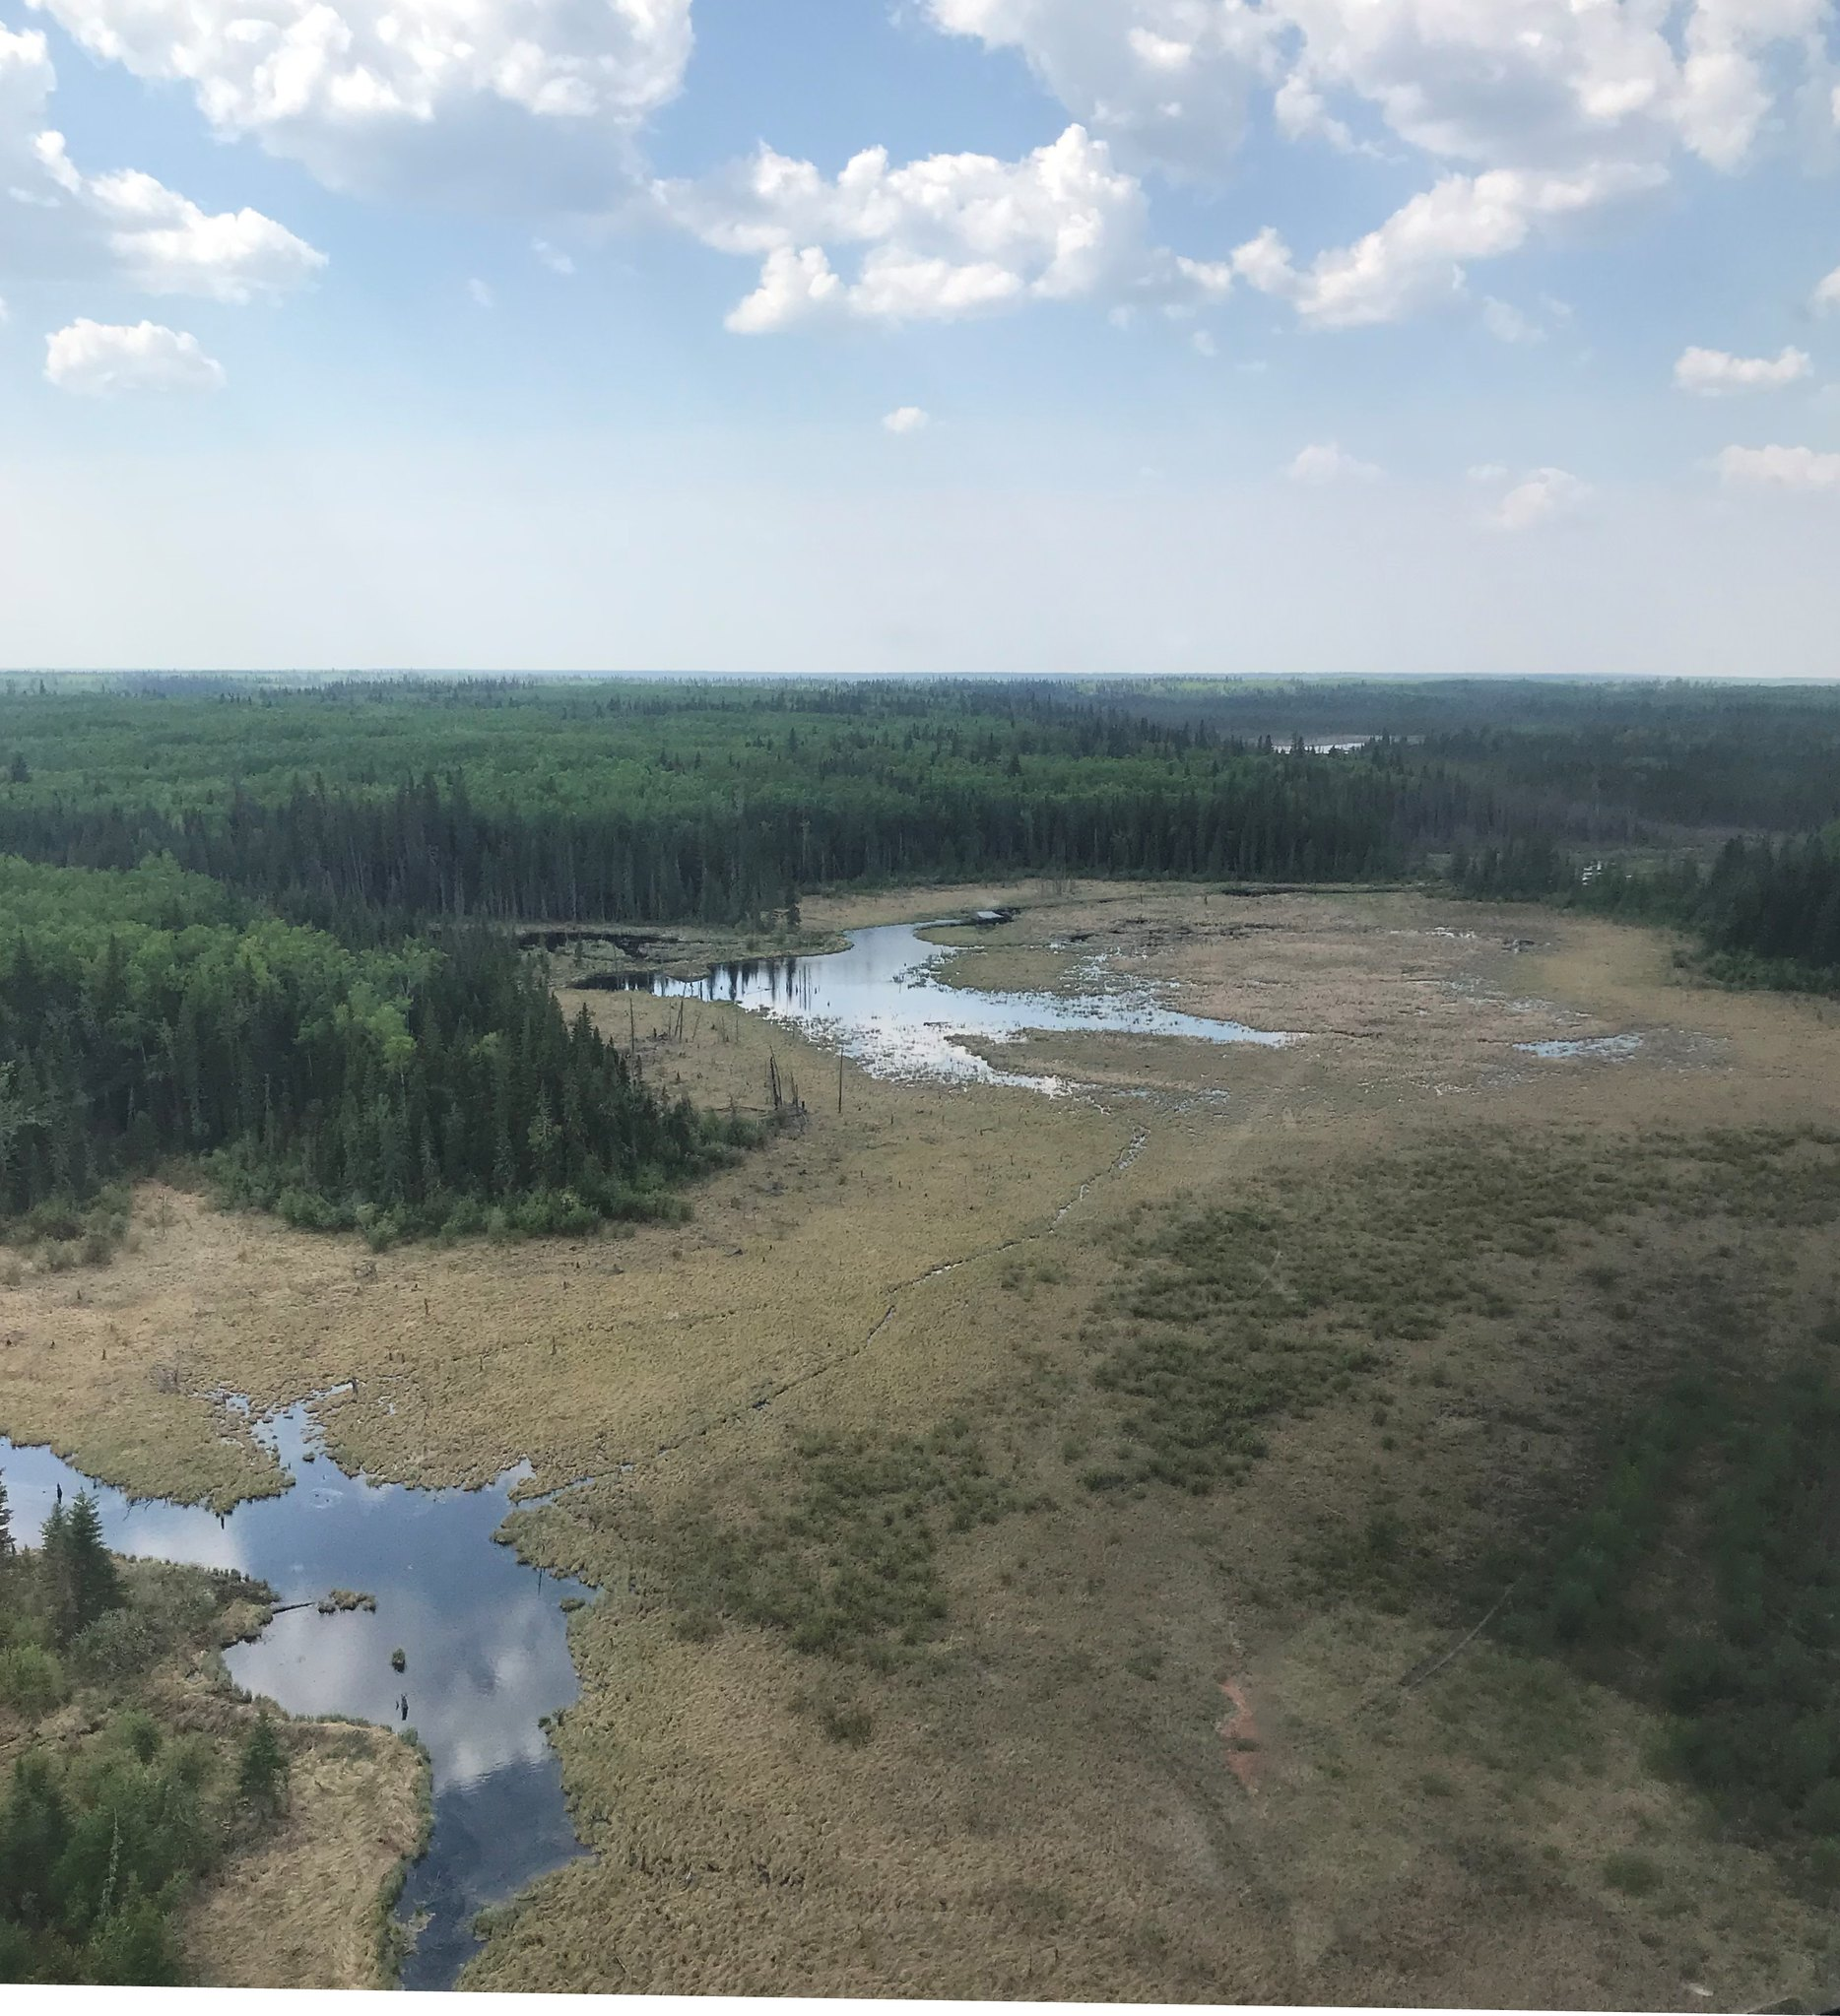 Near Peace River, Alberta, the good 2017 Spring wetland conditions have deteriorated this Spring of 2018. Note the depressed water levels in this wetland complex. (USFWS photo by Jim Bredy)